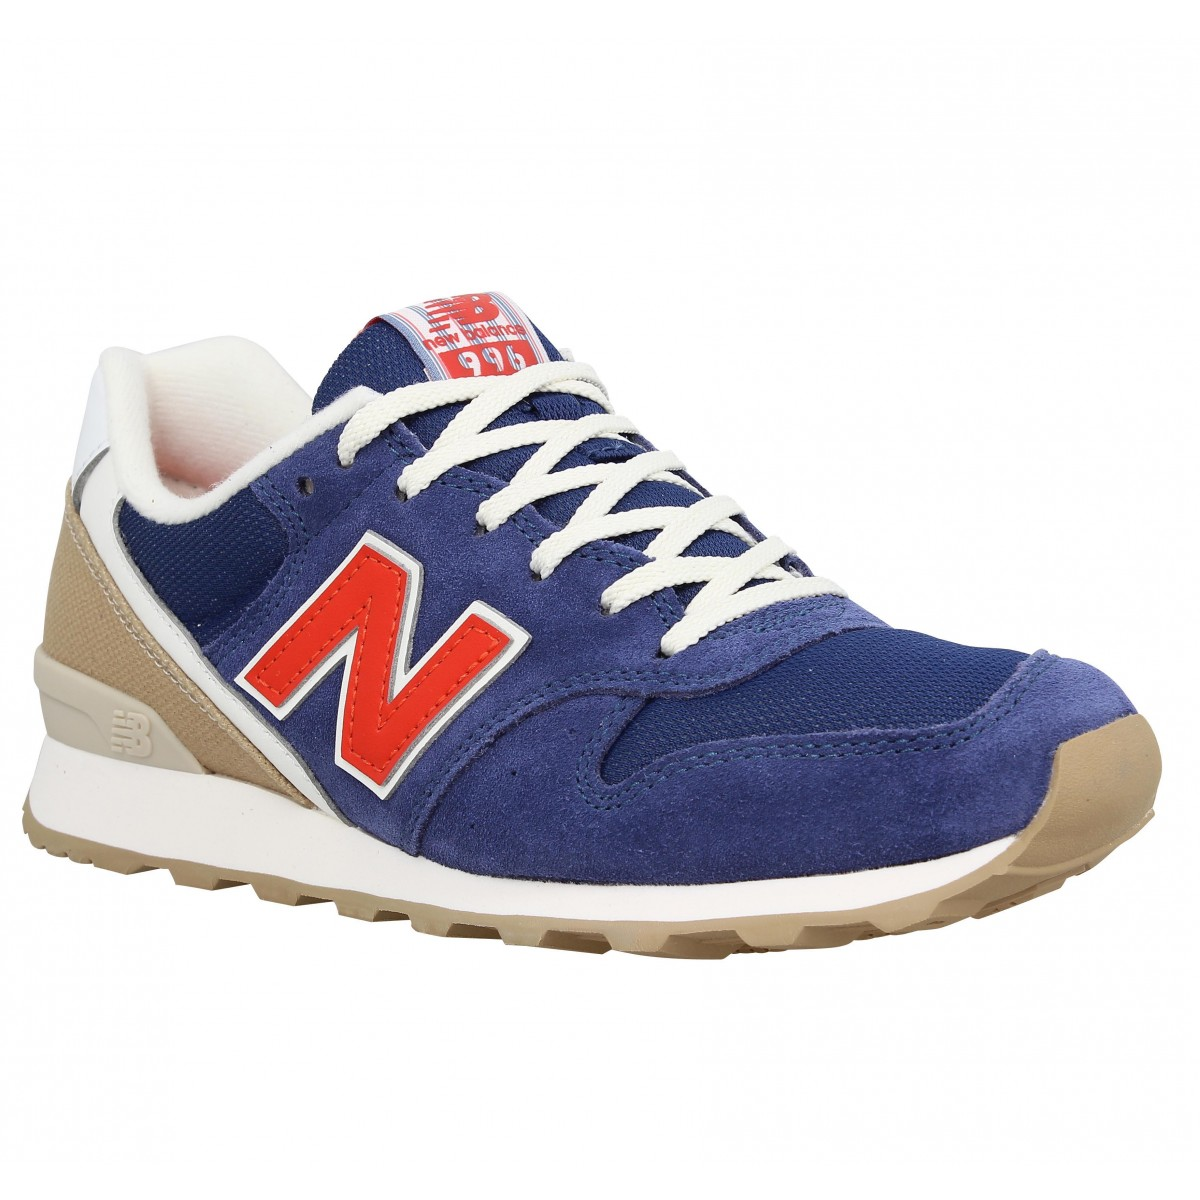 Baskets NEW BALANCE 996 velours + toile Femme Marine + Rouge